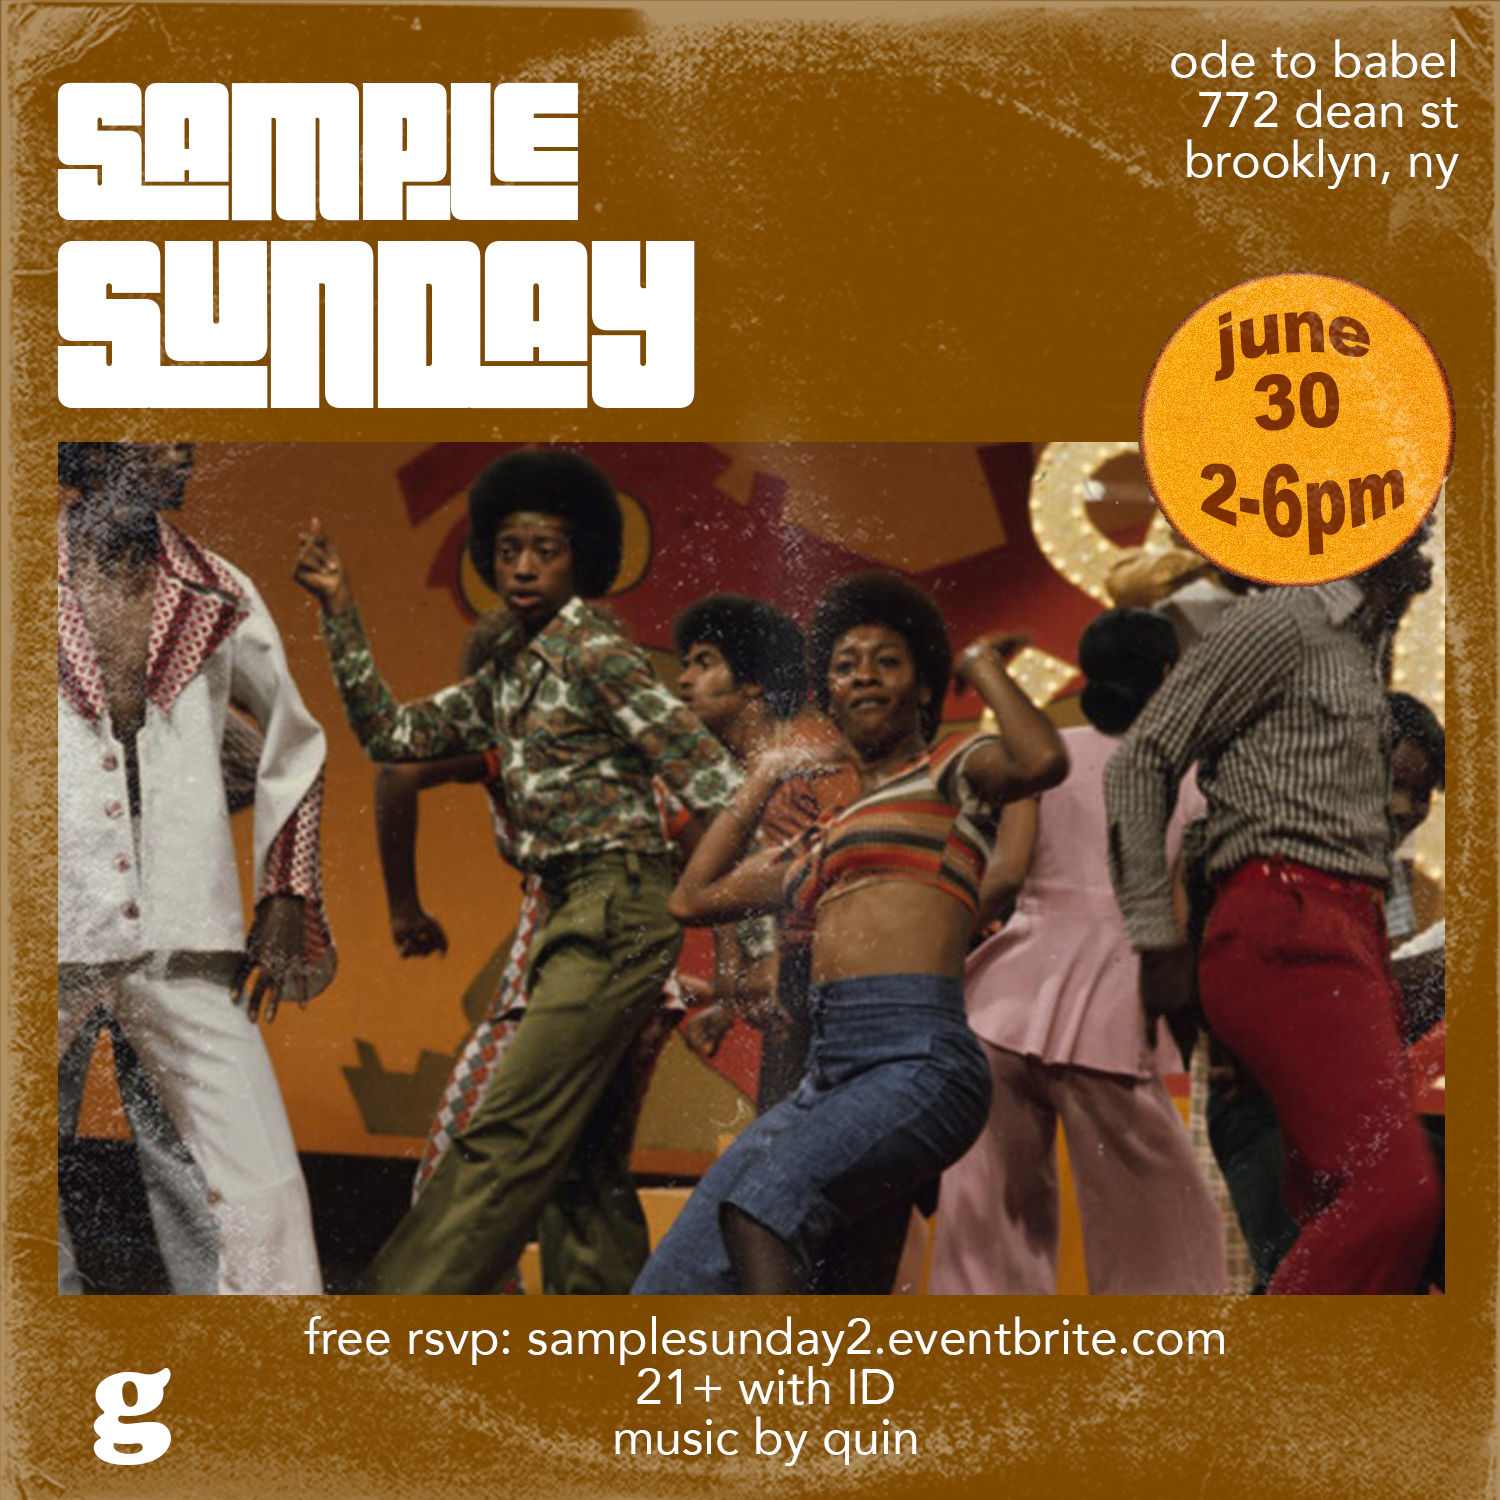 Sample Sunday 2 - The #SampleSunday party is back for the summer!All Hip-Hop and R&B songs. All of their samples. All day.Event starts at 2pm, and it's FREE!Hosted by The Gumbo.Music by quin.21+